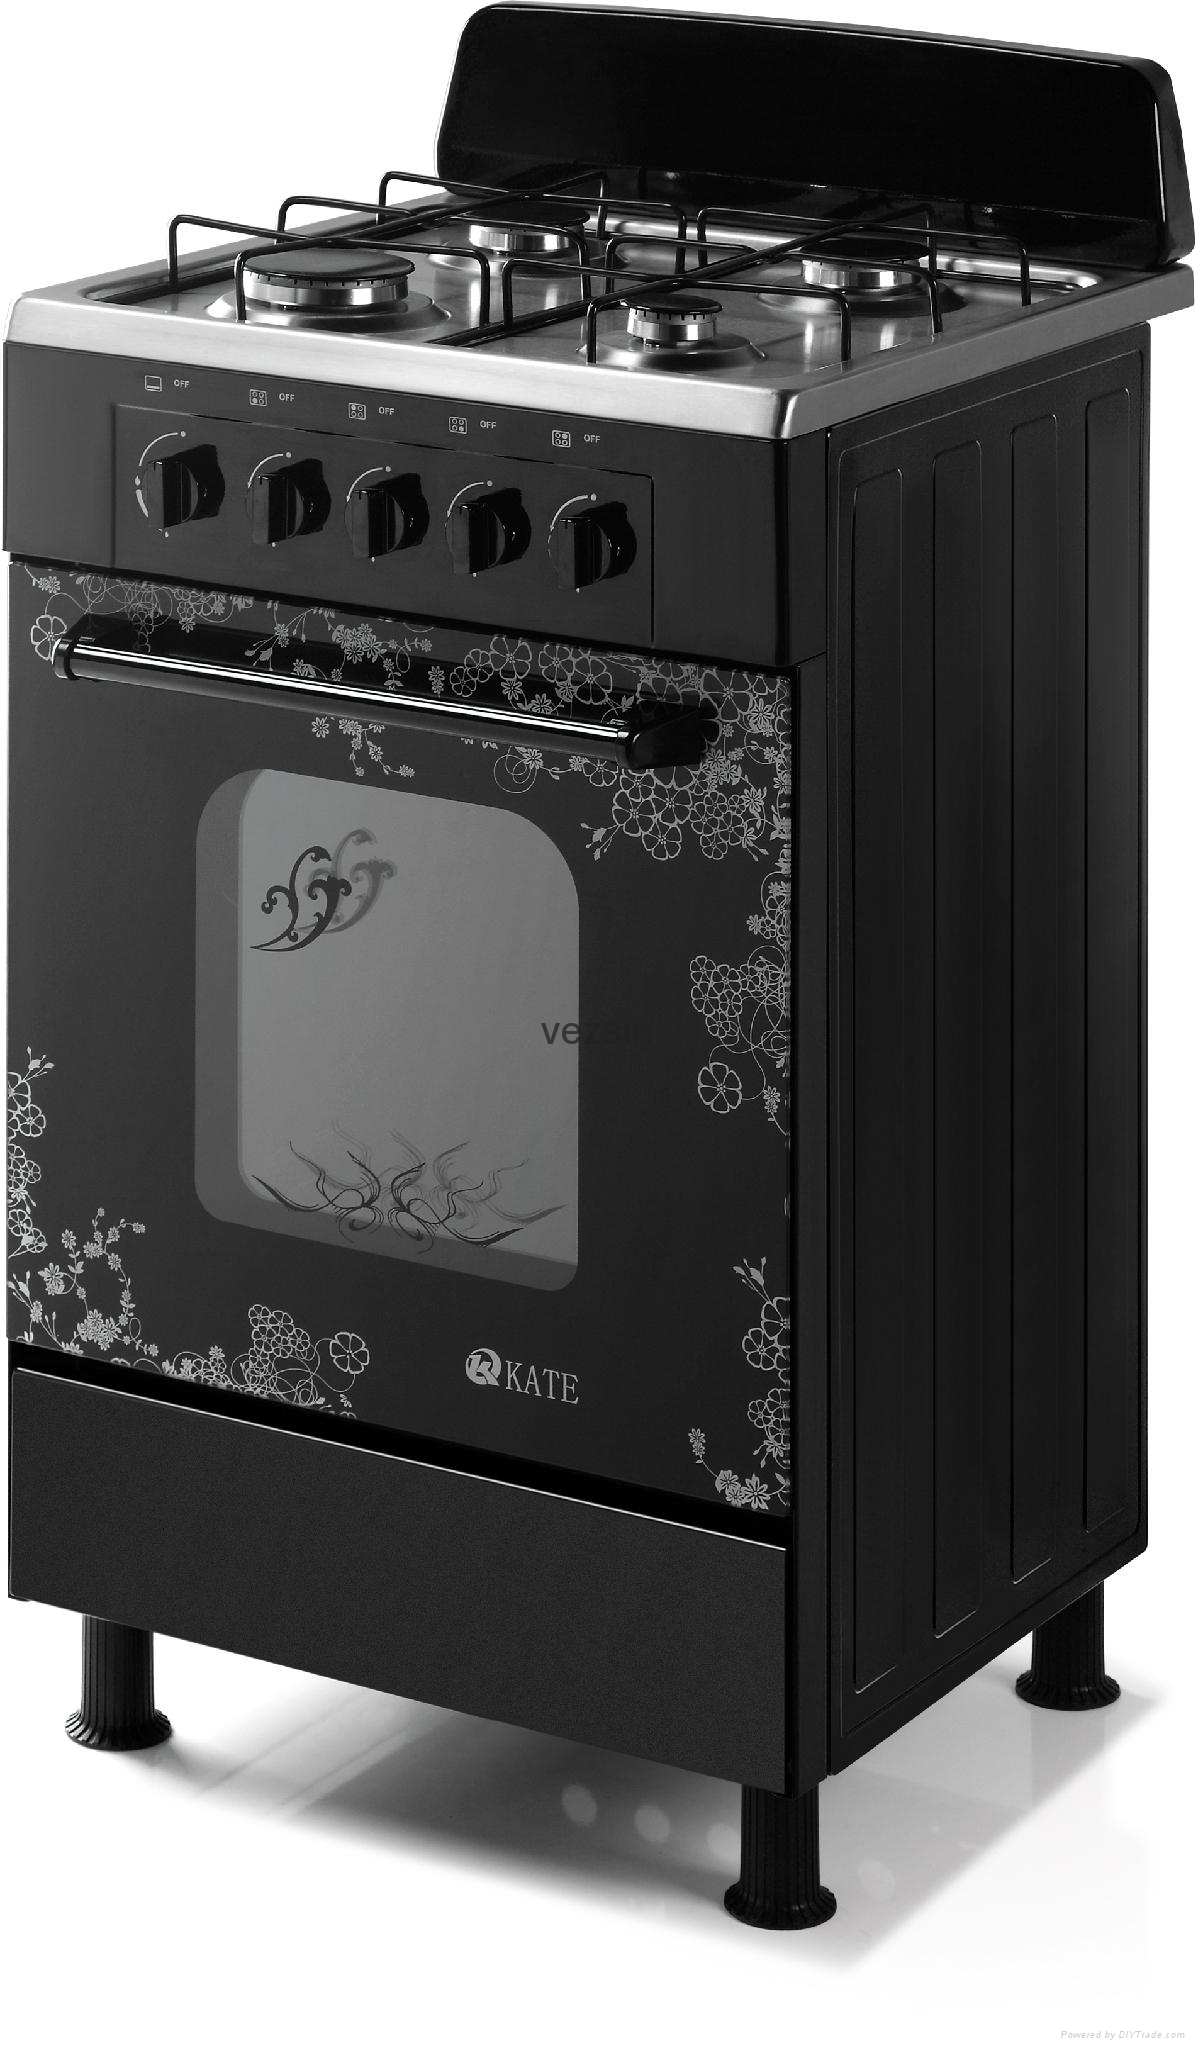 Kate 20 Inch Stainless Steel Free Standing Gas Cooker with Oven (G20A10) 1